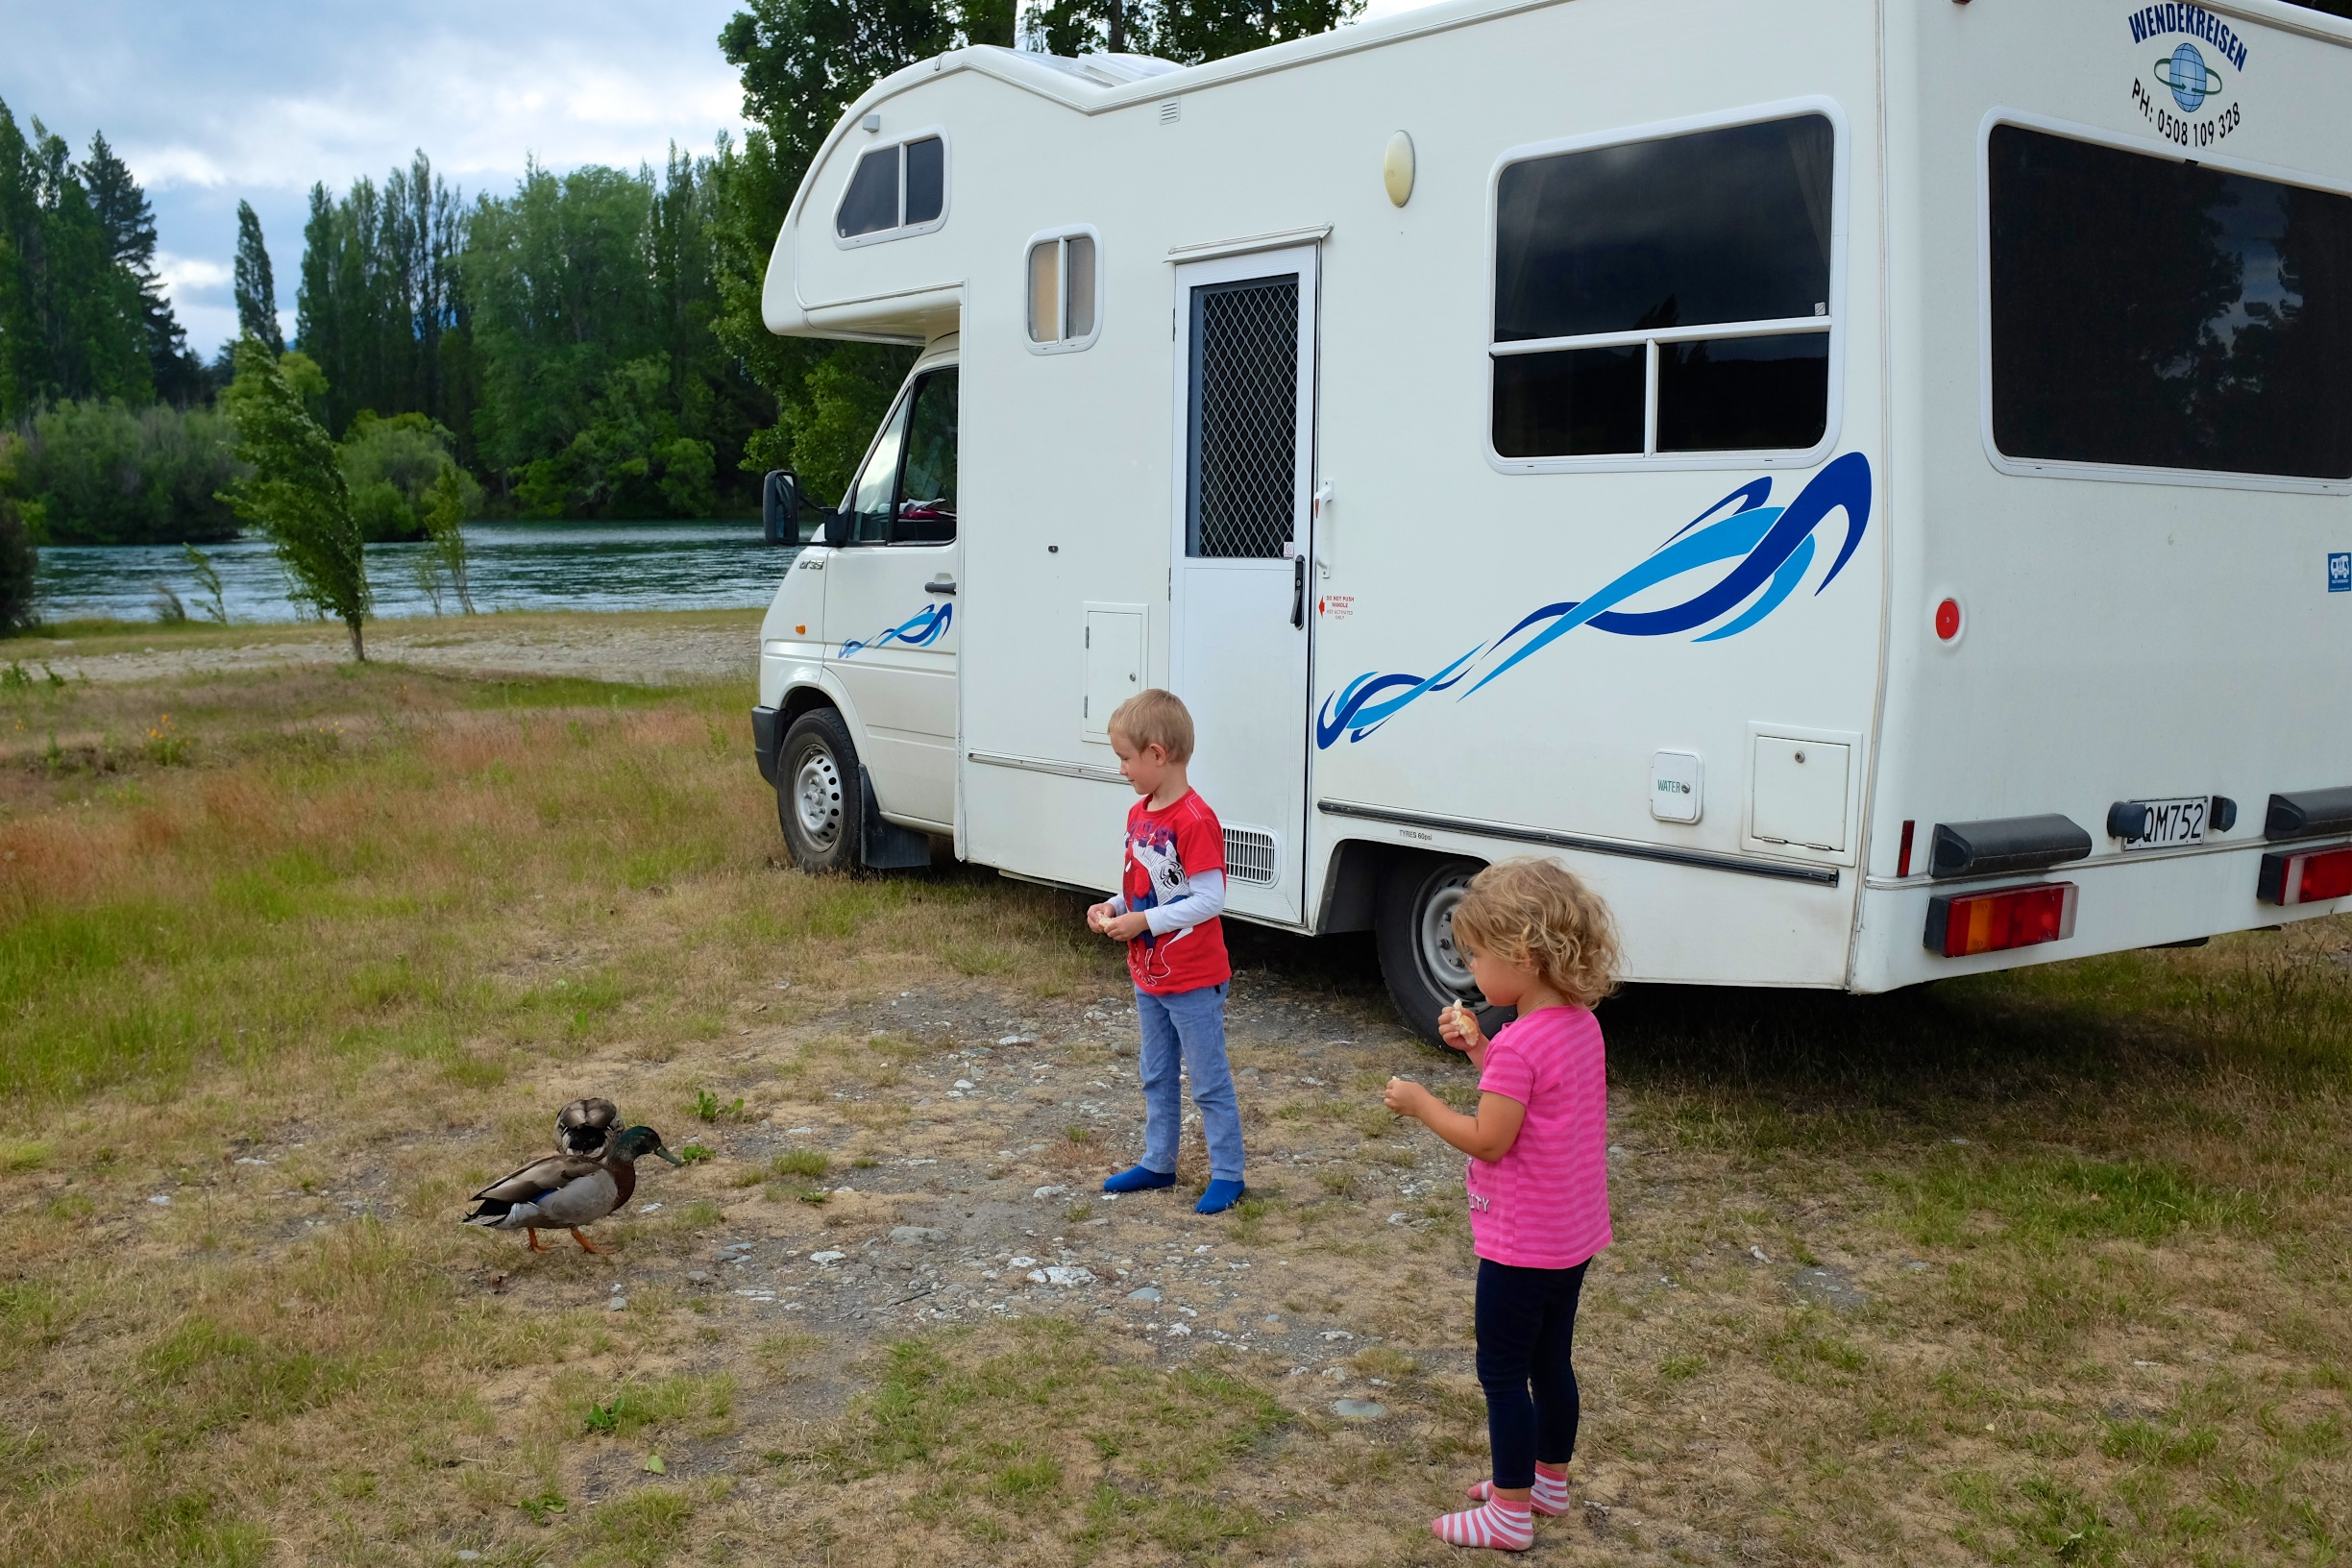 Albert Town Campground